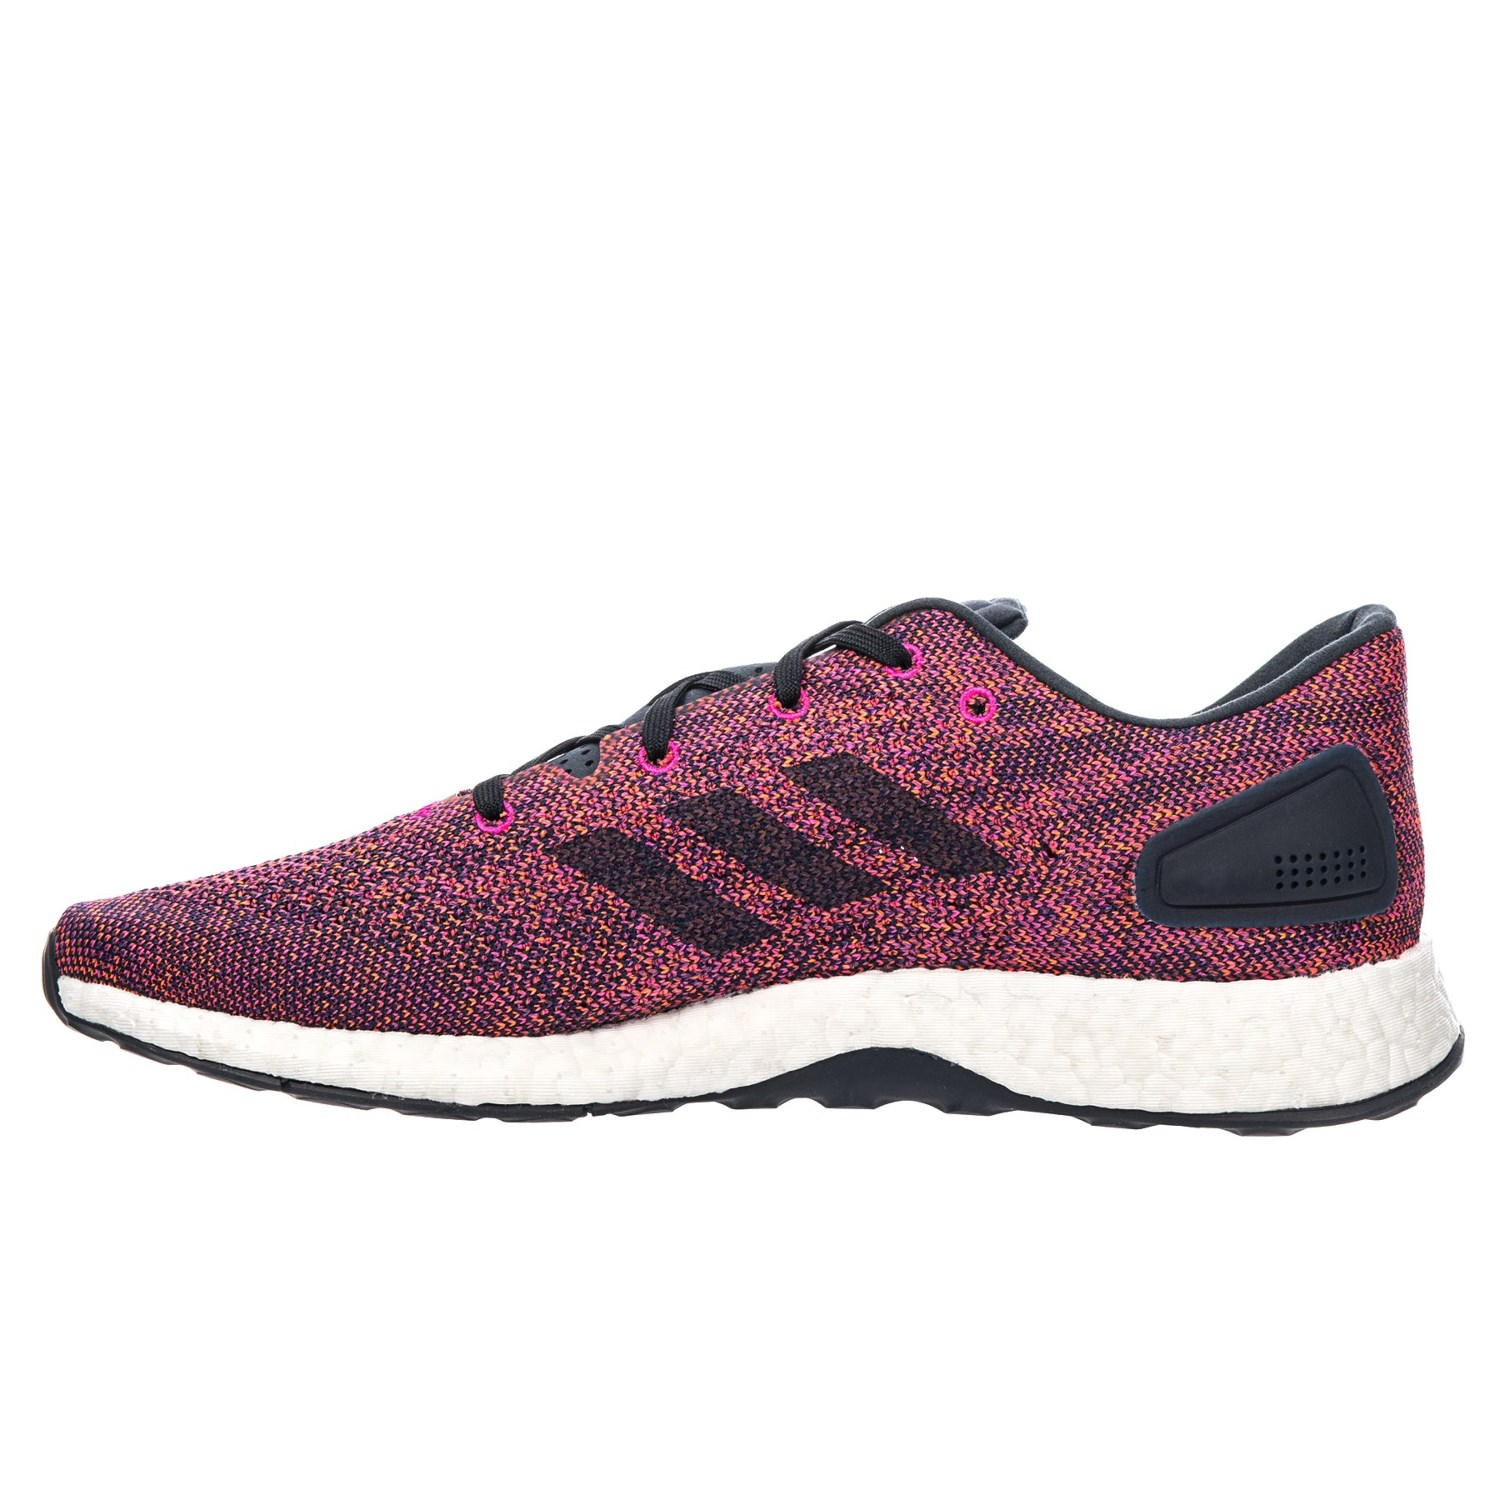 ae73badf988d4 adidas PureBOOST DPR LTD Running Shoes (For Men) - Save 38%